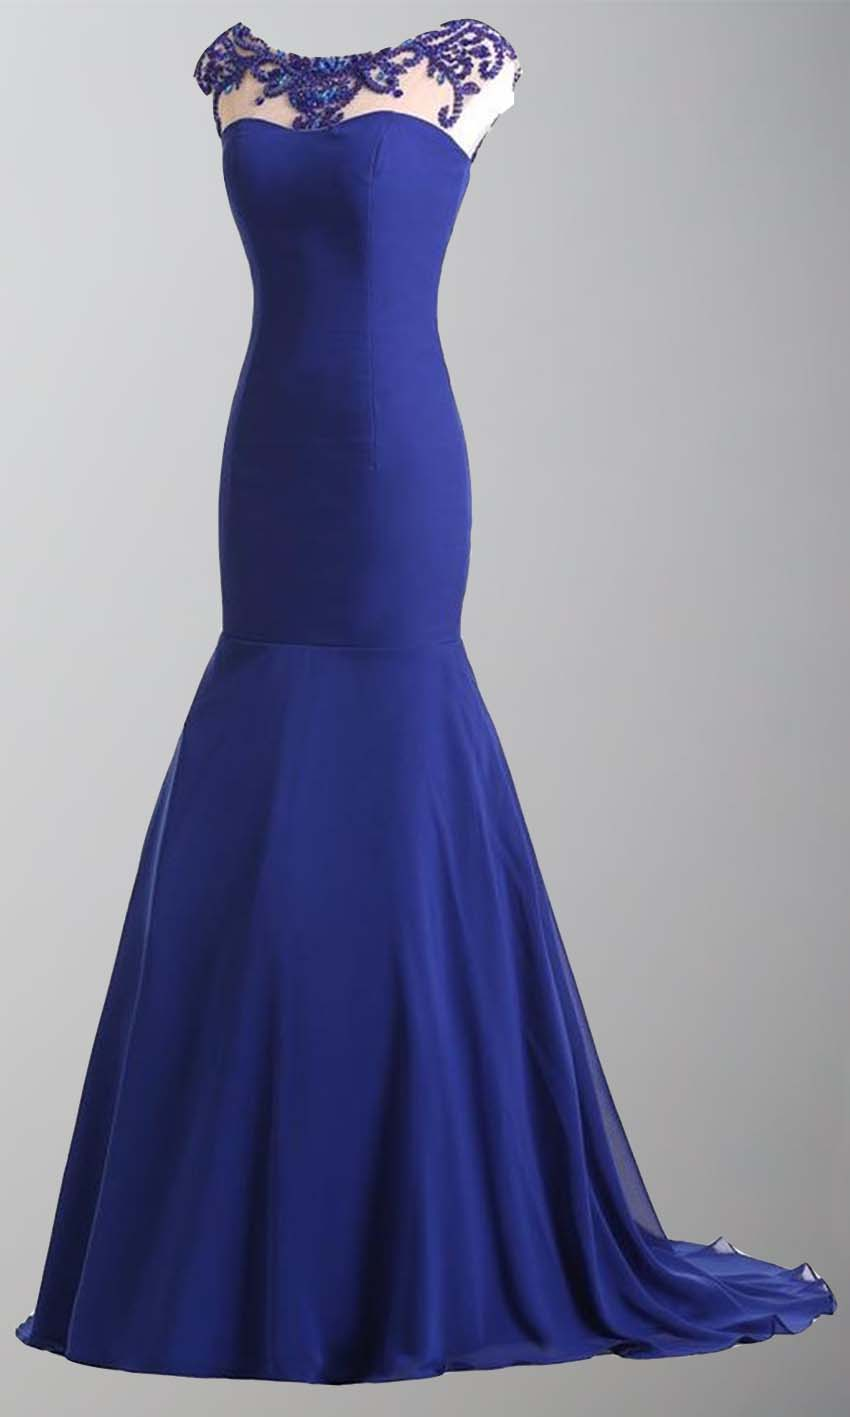 Blue Jeweled High Illusion Mermaid Long Formal Dresses KSP400 [KSP400] - £99.00 : Cheap Prom Dresses Uk, Bridesmaid Dresses, 2014 Prom & Evening Dresses, Look for cheap elegant prom dresses 2014, cocktail gowns, or dresses for special occasions? kissprom.co.uk offers various bridesmaid dresses, evening dress, free shipping to UK etc.